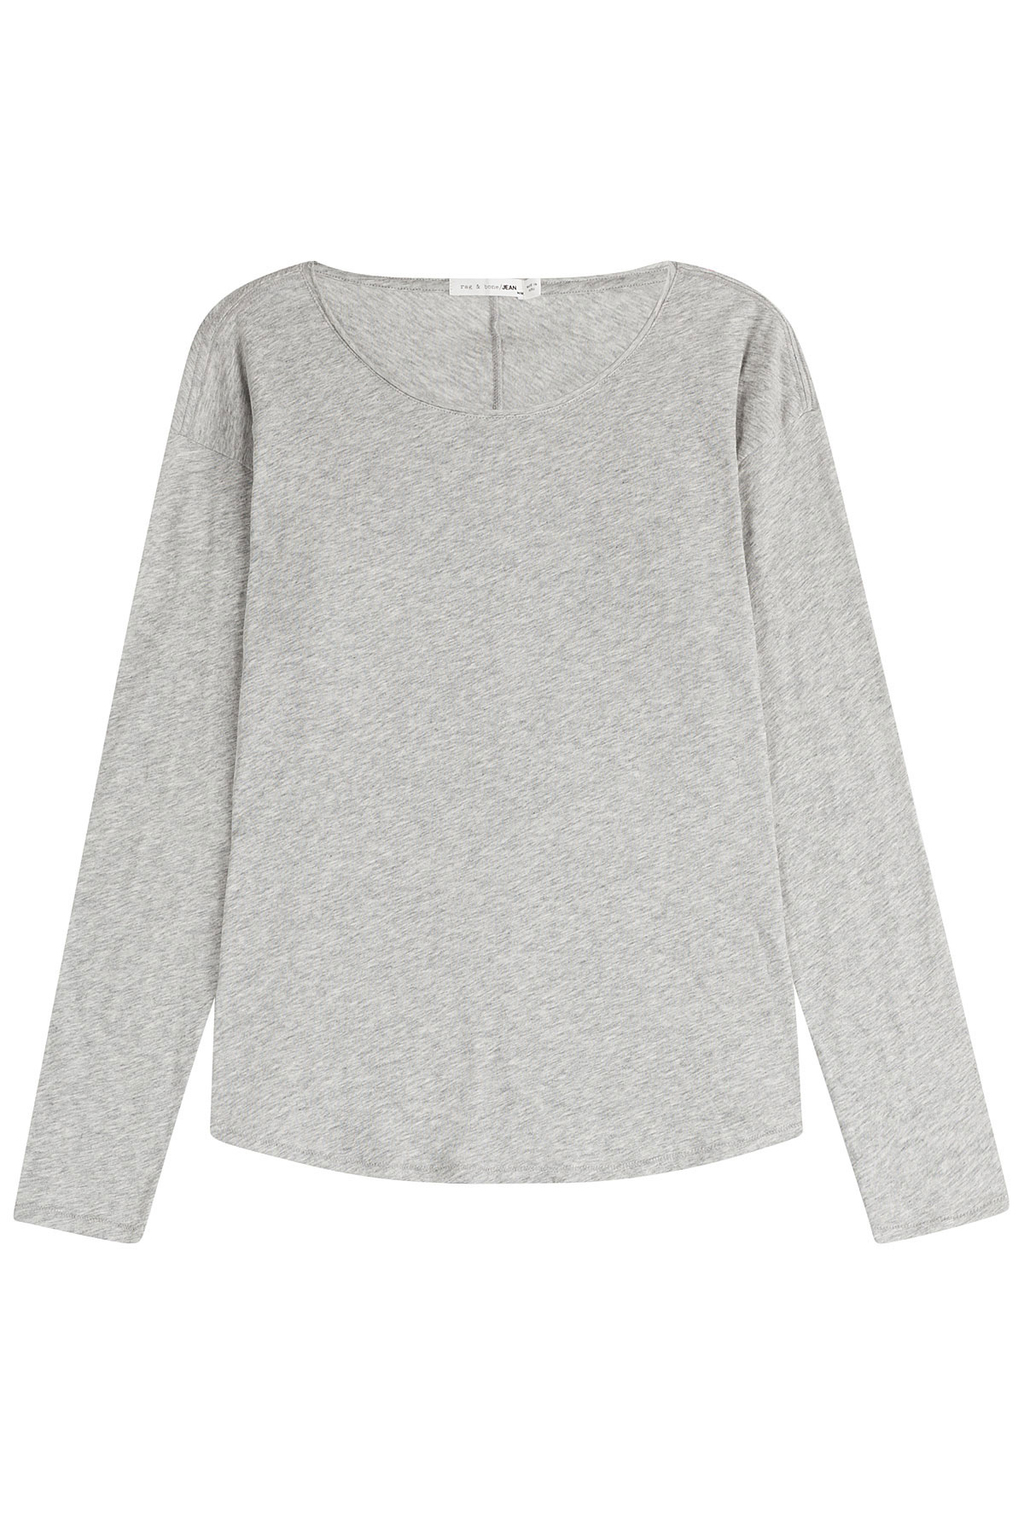 Cotton T Shirt With Scoop Neckline Grey - neckline: round neck; pattern: plain; style: t-shirt; predominant colour: light grey; occasions: casual; length: standard; fibres: cotton - 100%; fit: body skimming; sleeve length: long sleeve; sleeve style: standard; pattern type: fabric; texture group: jersey - stretchy/drapey; season: s/s 2016; wardrobe: basic